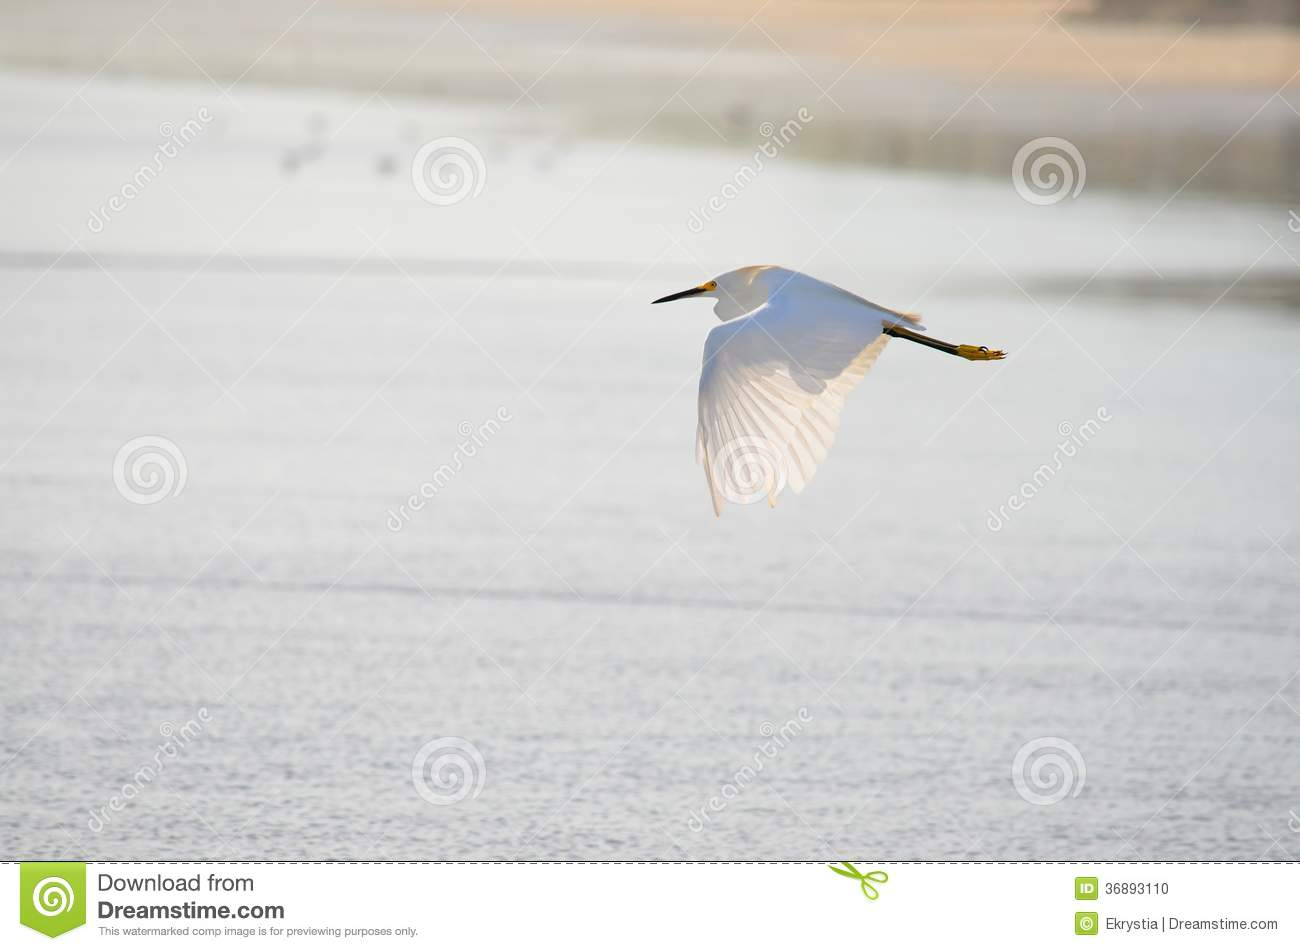 Download Uccello Di Volo, Spiaggia Di EL Espino Fotografia Stock - Immagine di background, colorful: 36893110